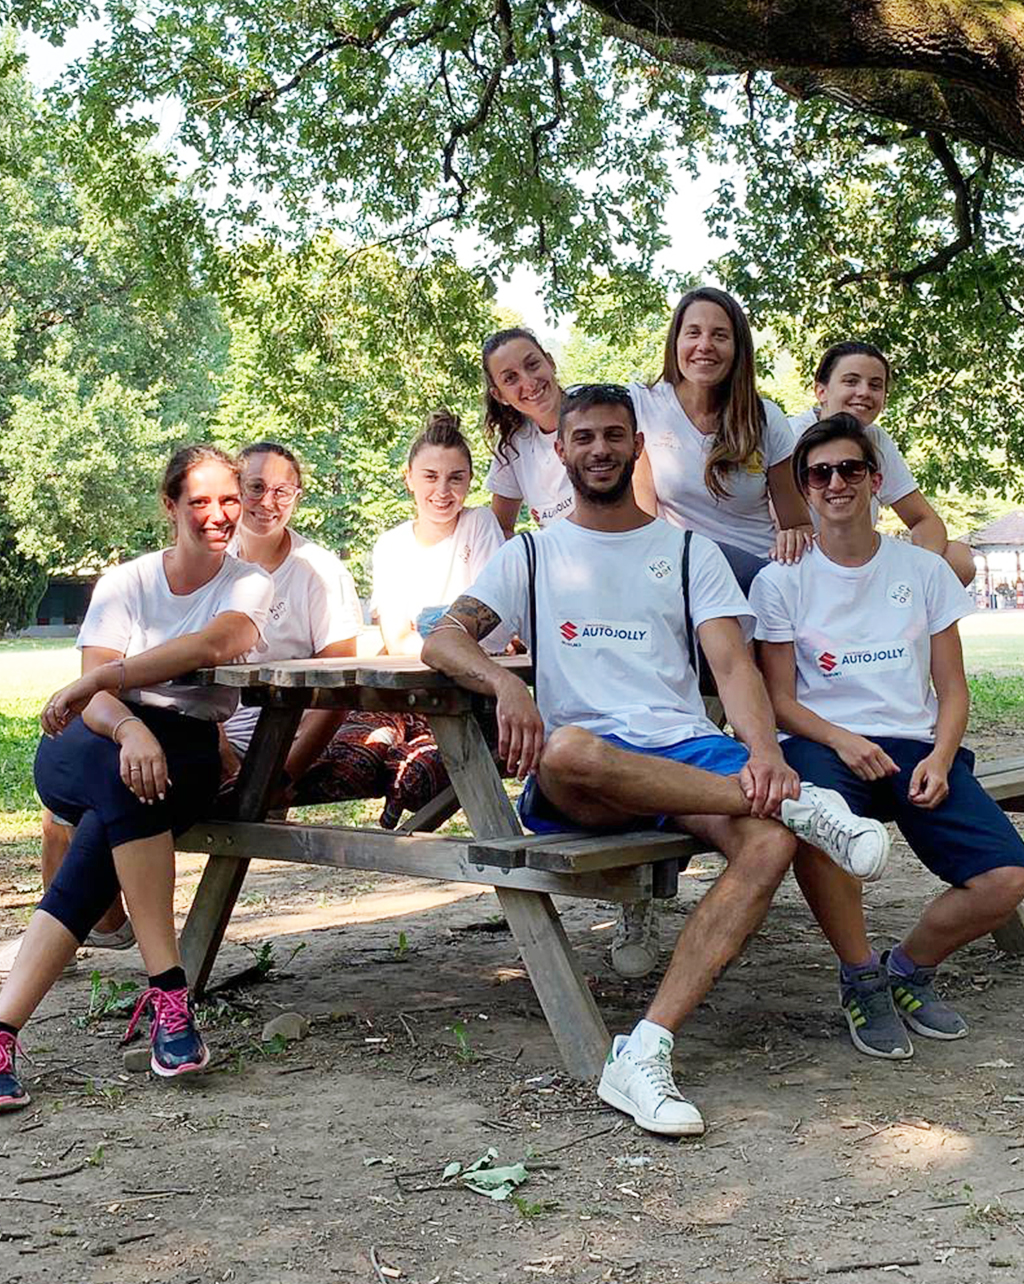 https://provagraphia1.cloud/wp-content/uploads/2021/03/SUMMER-CAMP_staff_1-chiara.jpg